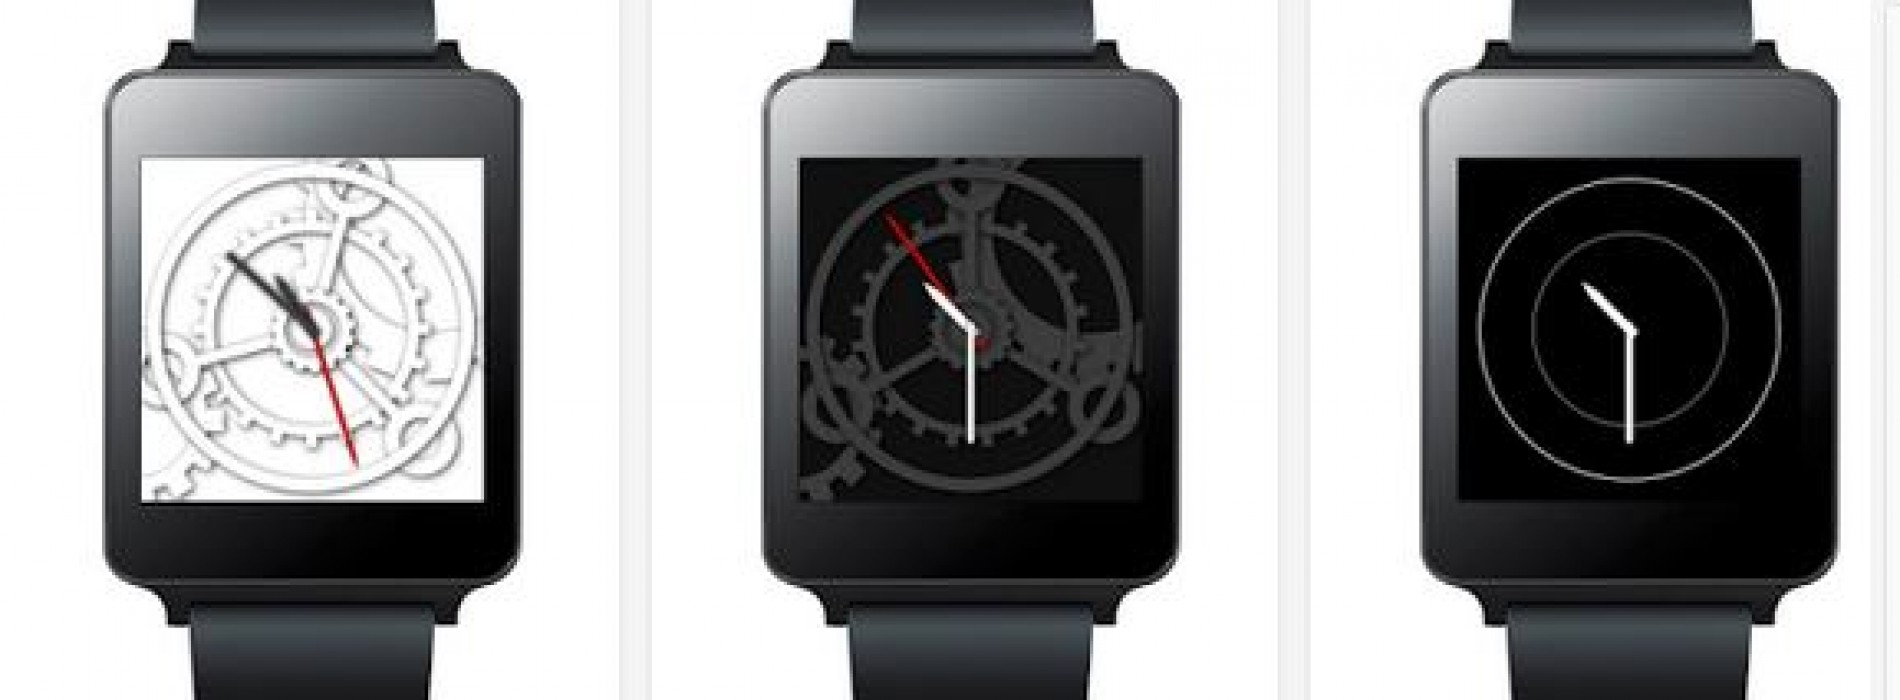 Watch This App: Mechanical Gears Watch Face